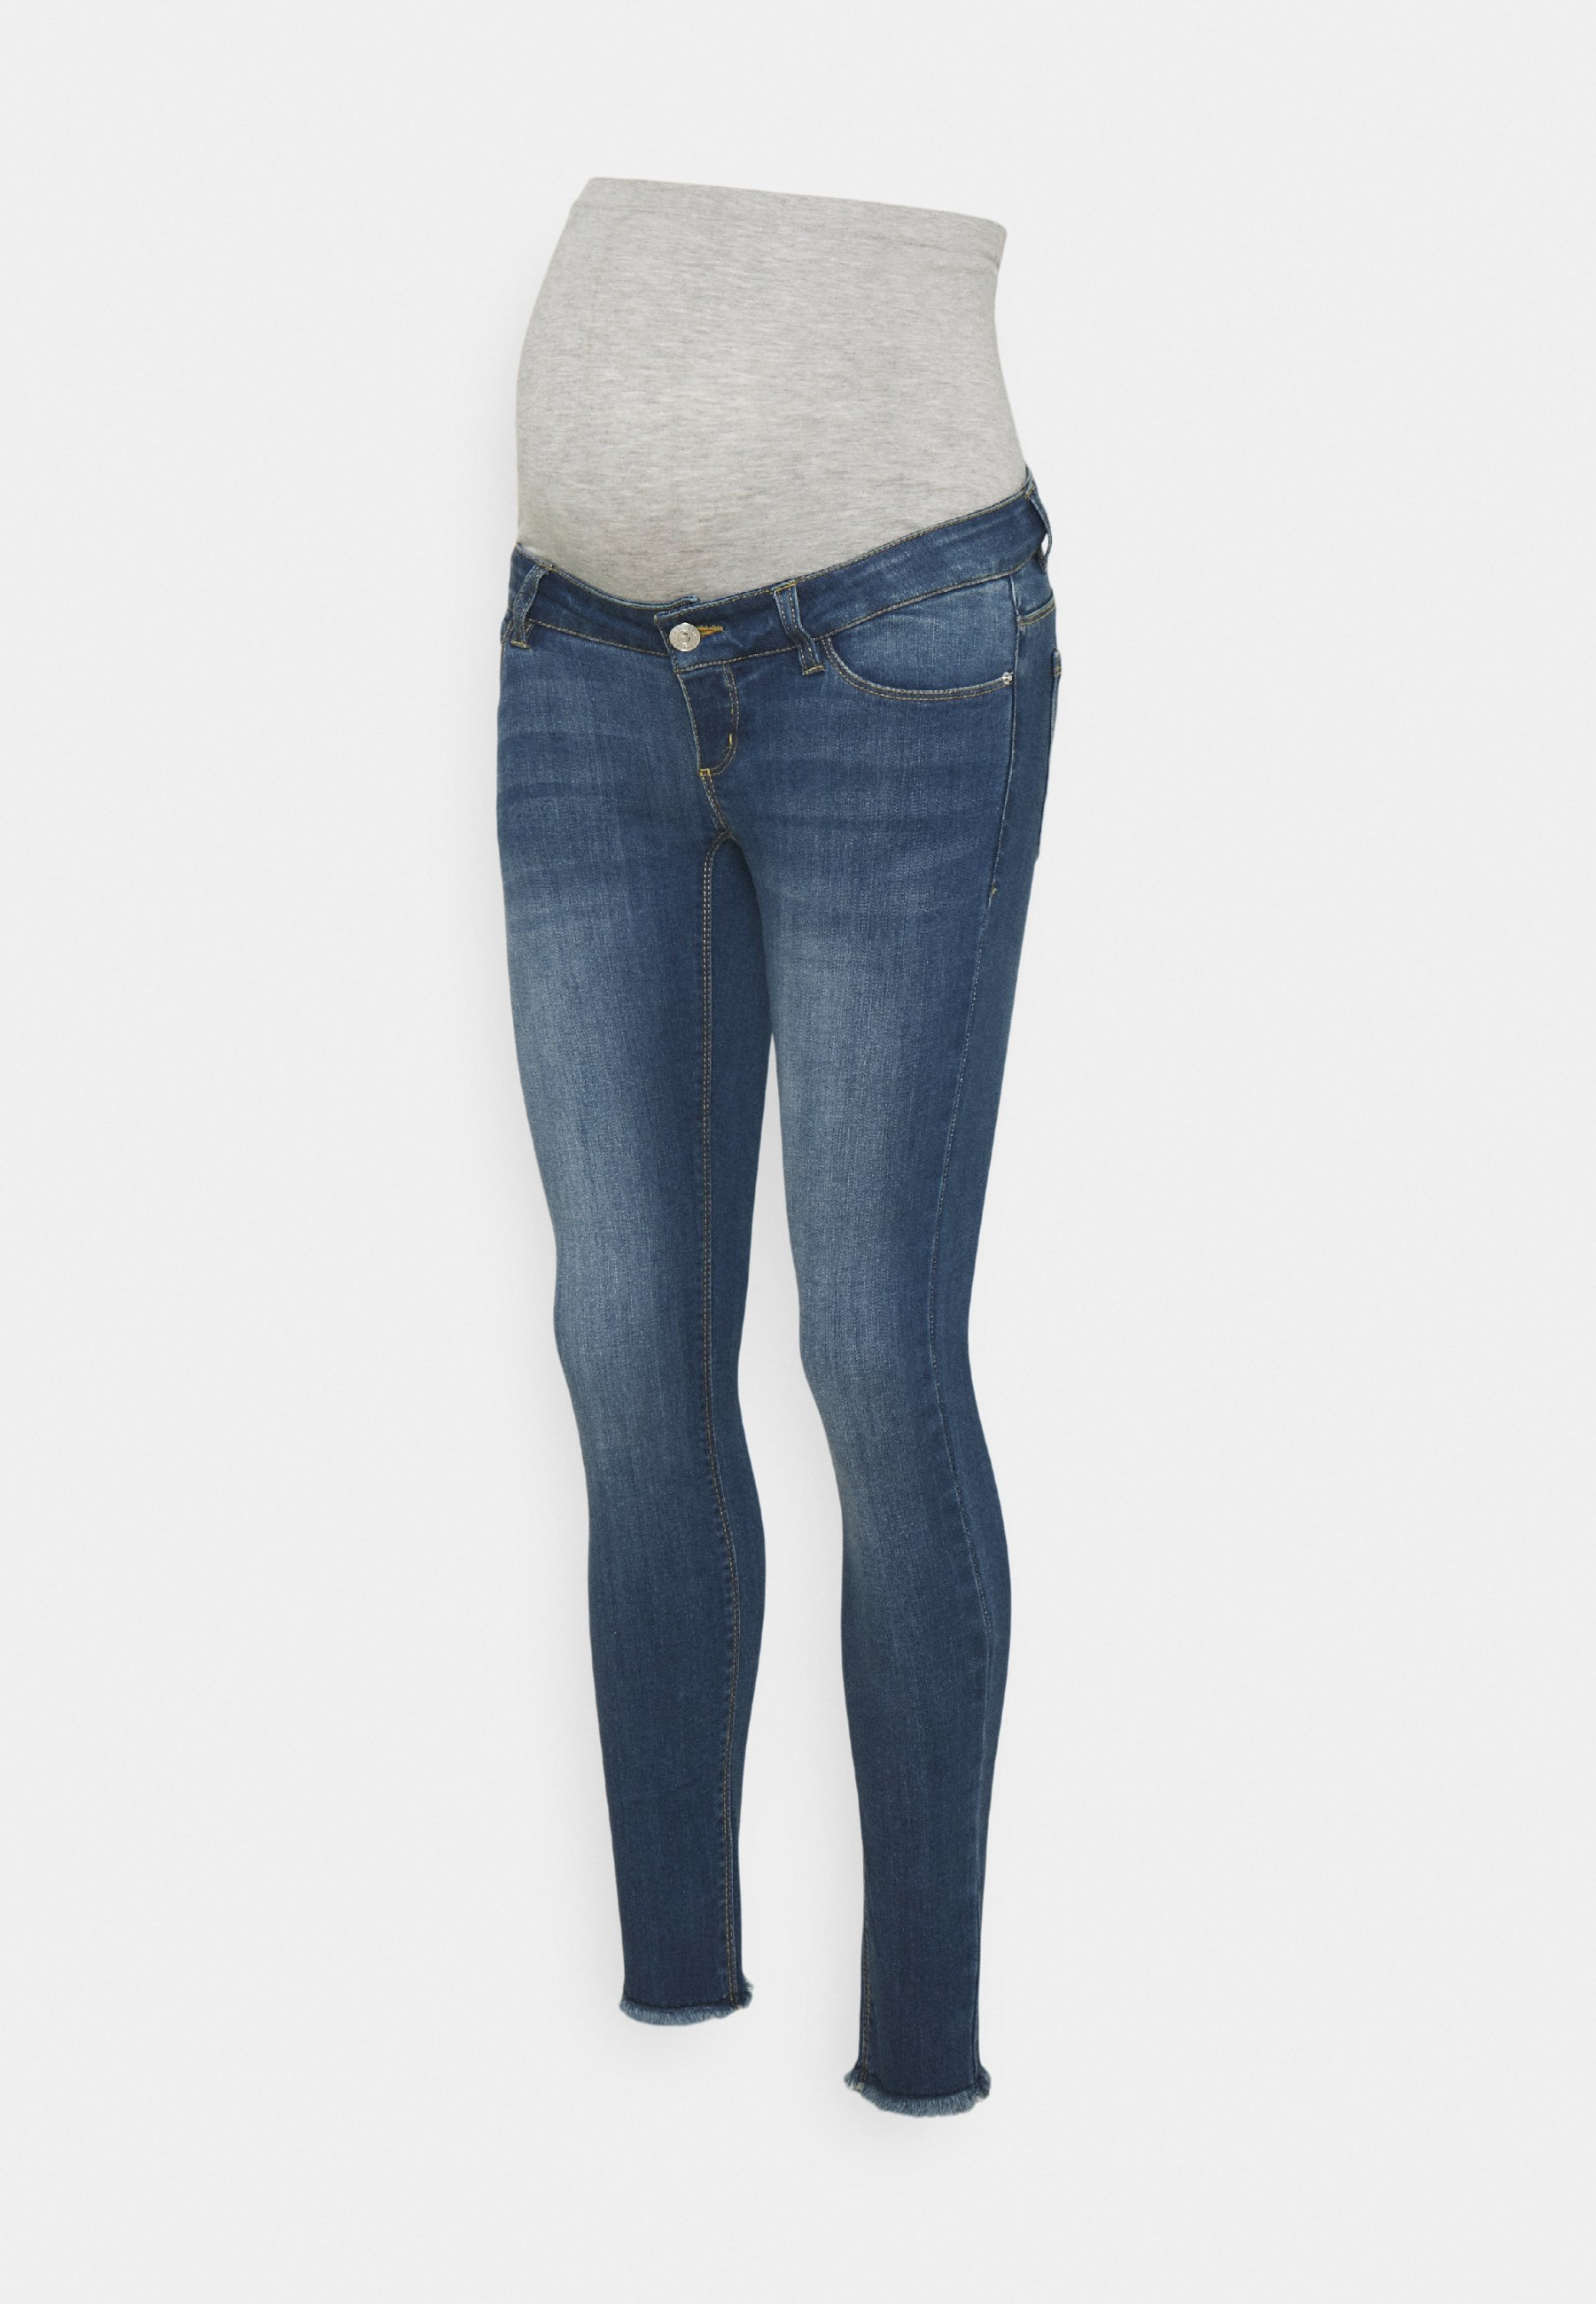 Donna PCMDELLA 7/8 RAW EDGE JEANS - Jeans Skinny Fit